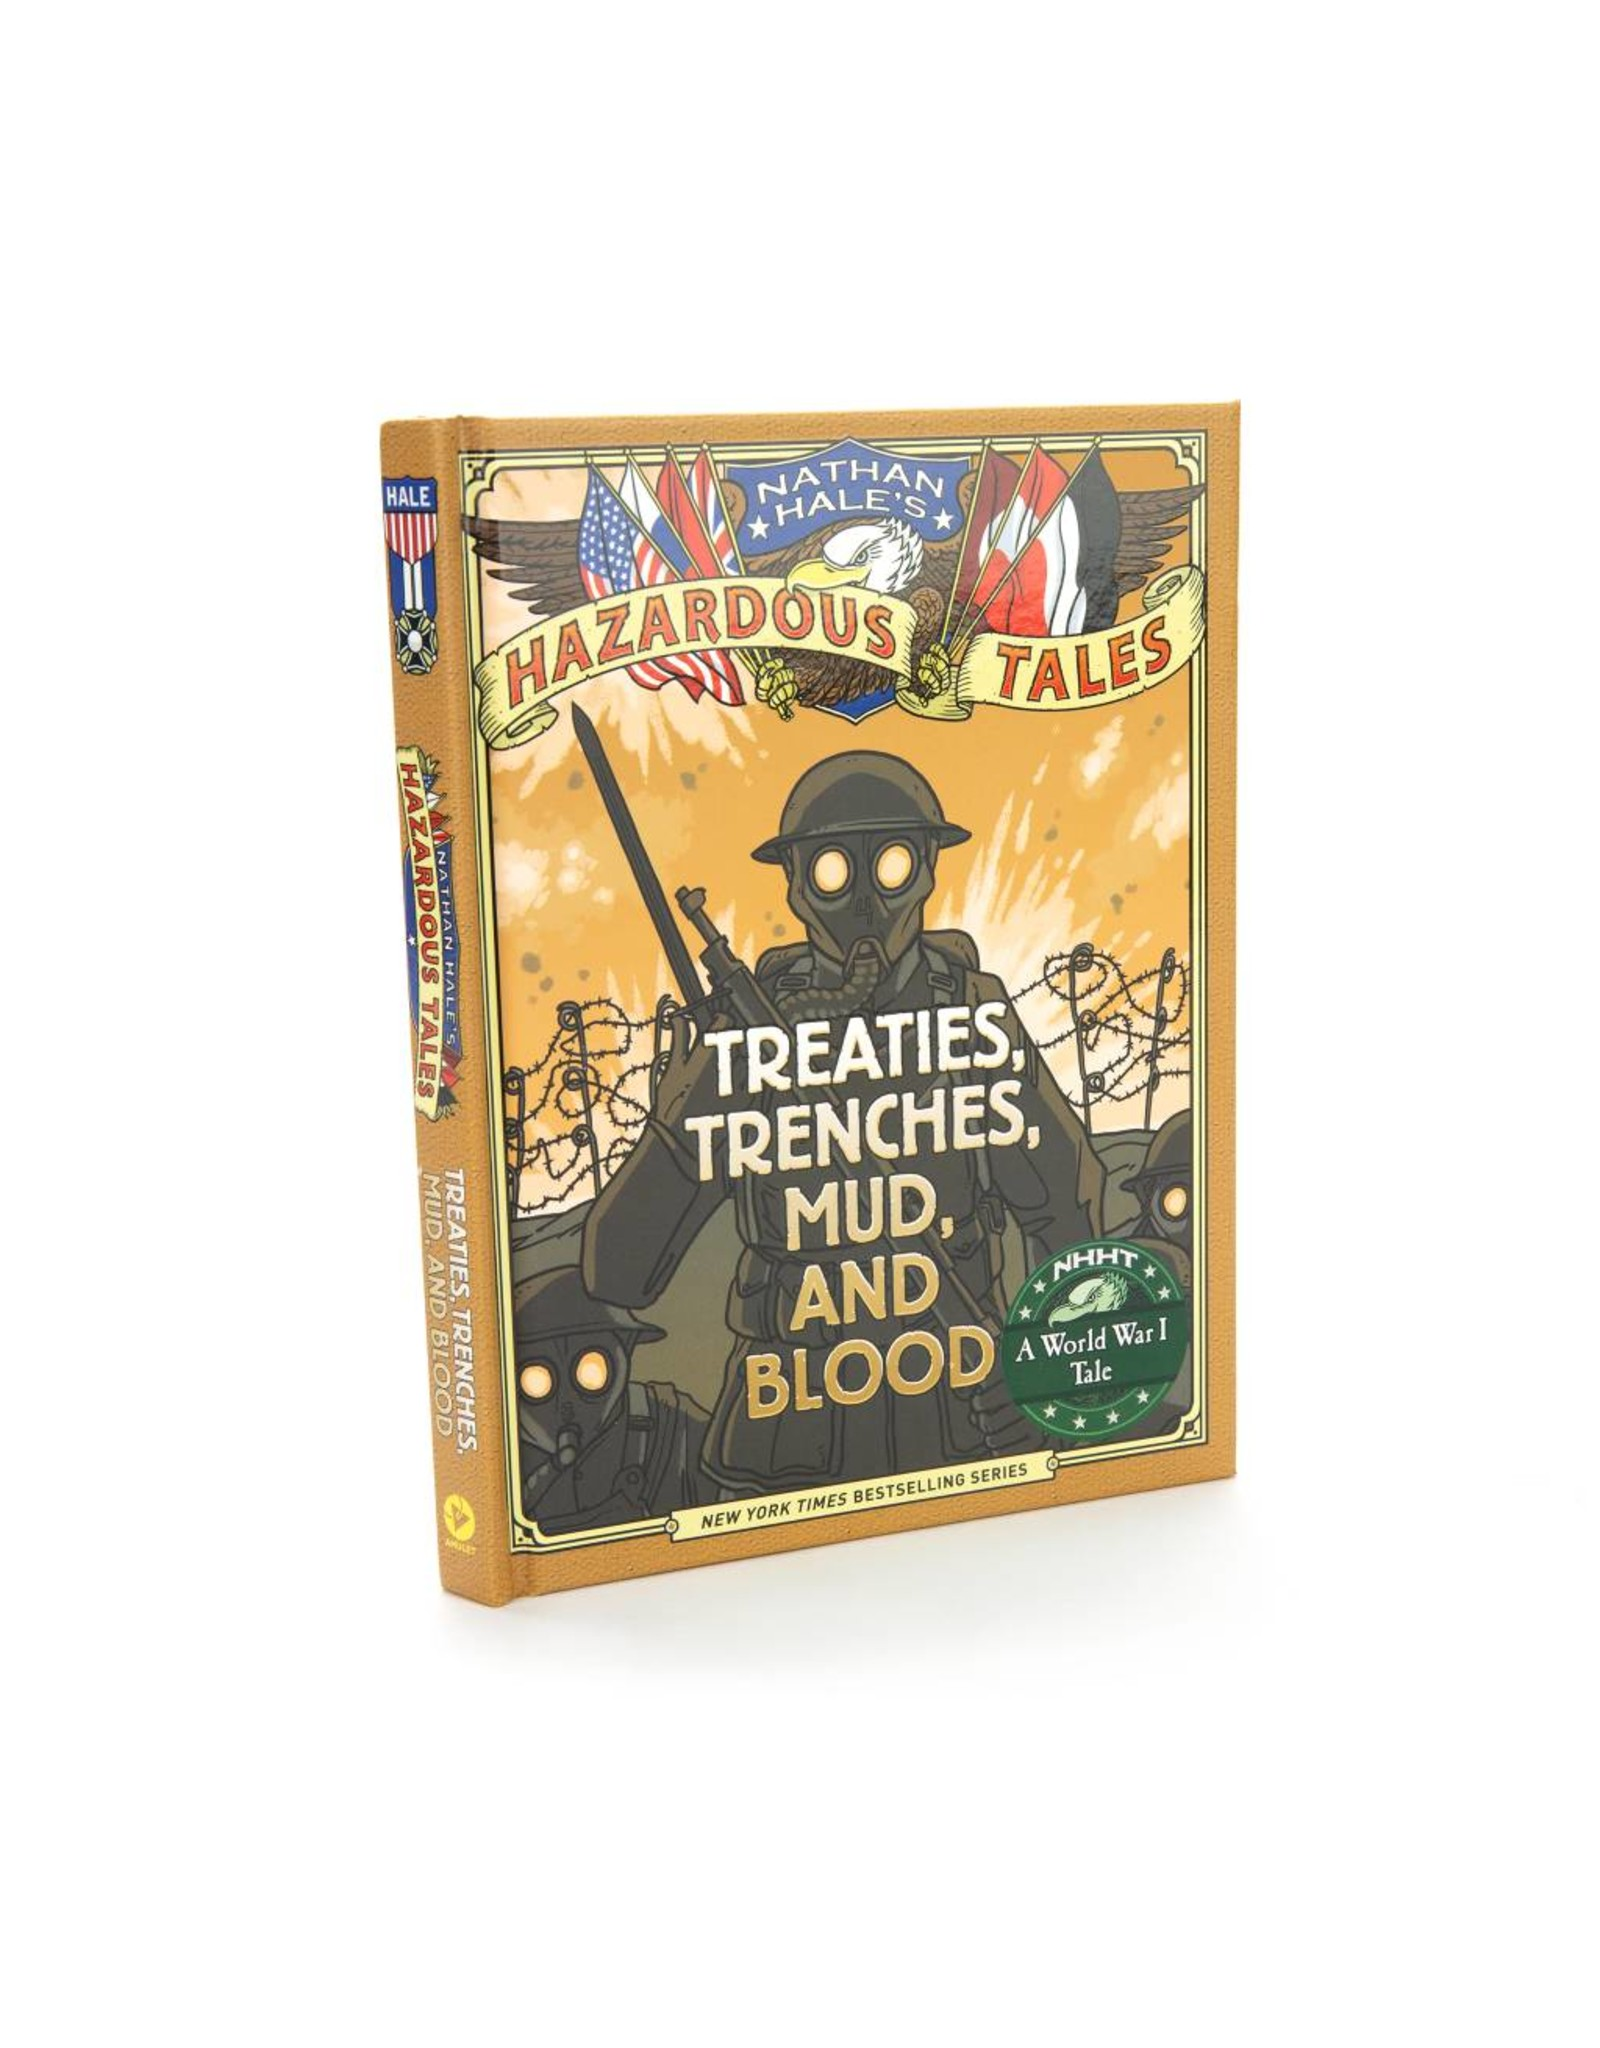 Treaties, Trenches and Mud